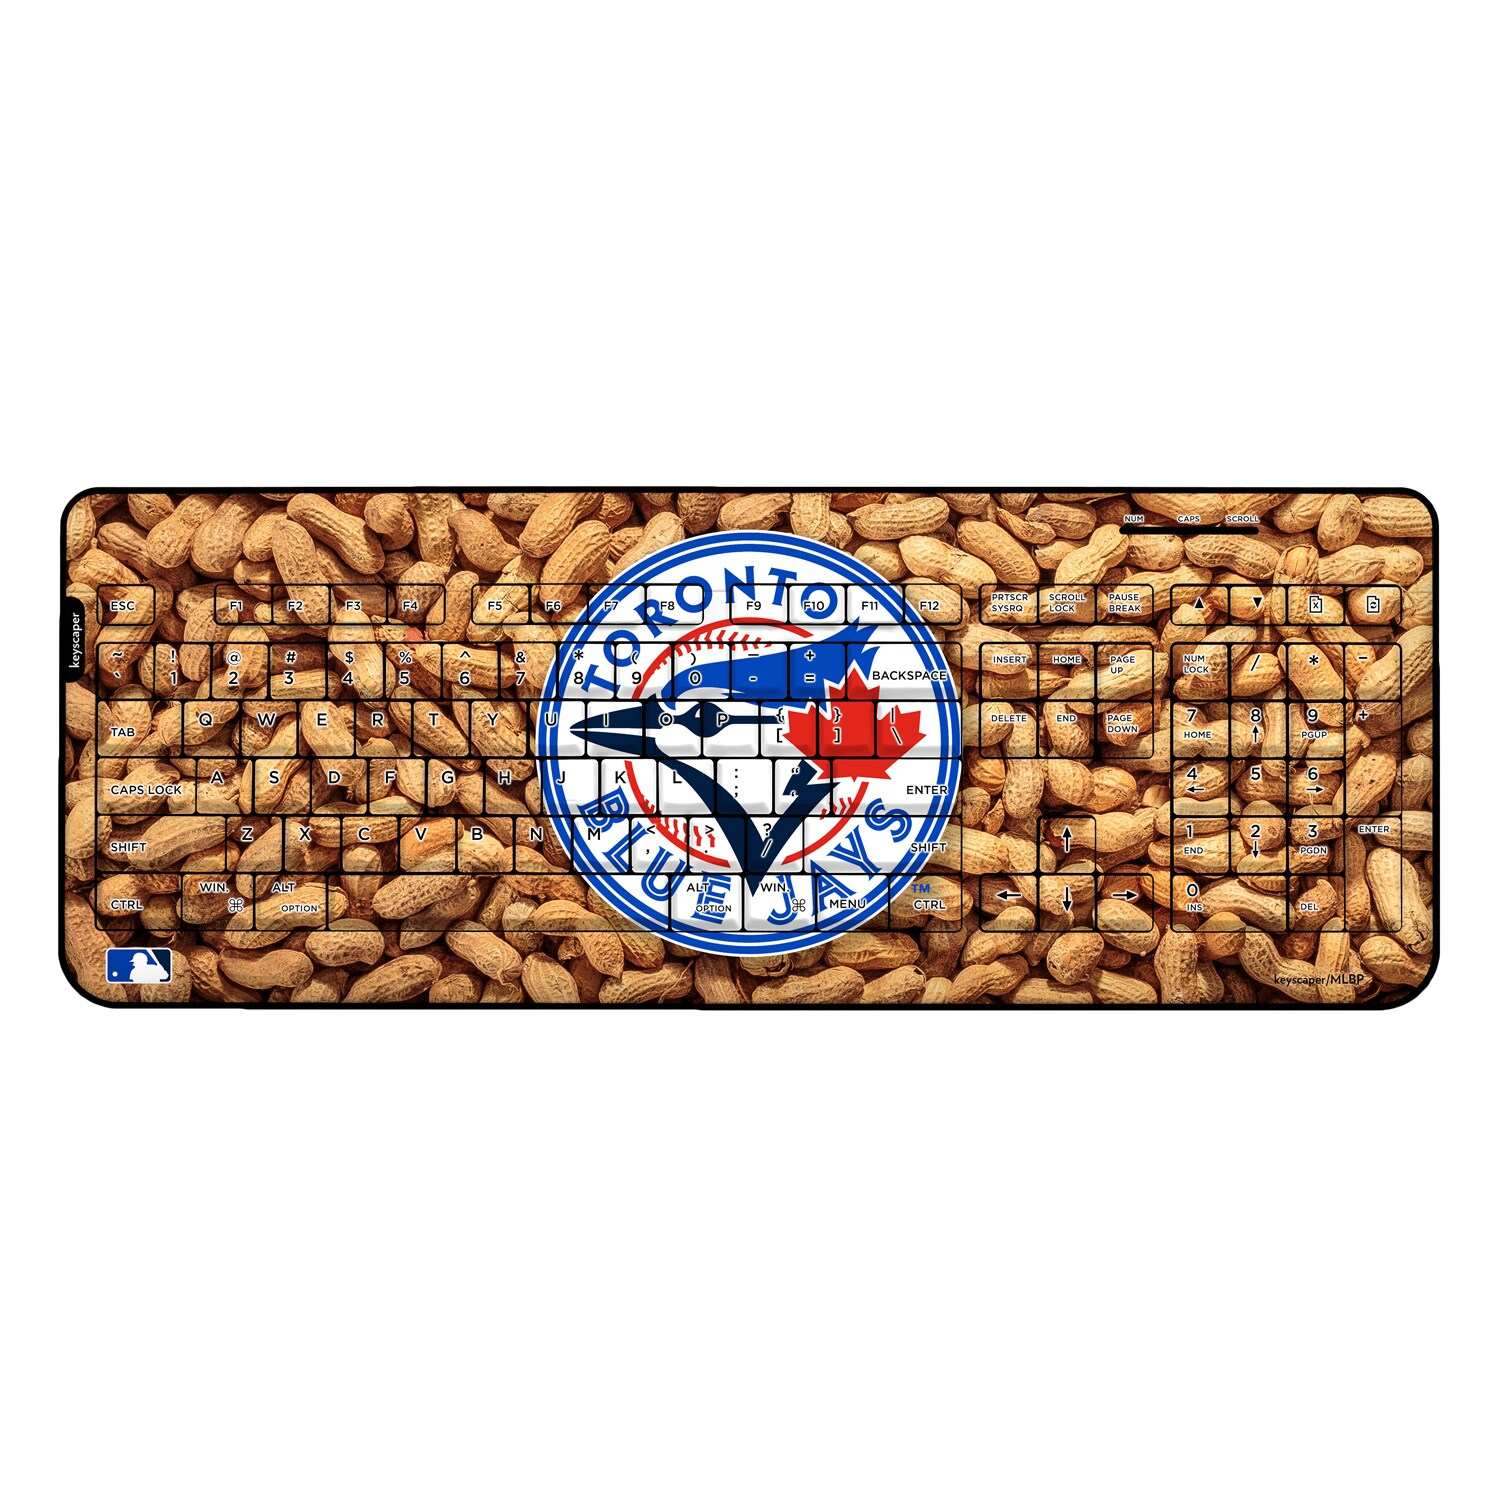 Toronto Blue Jays Peanuts Wireless USB Keyboard